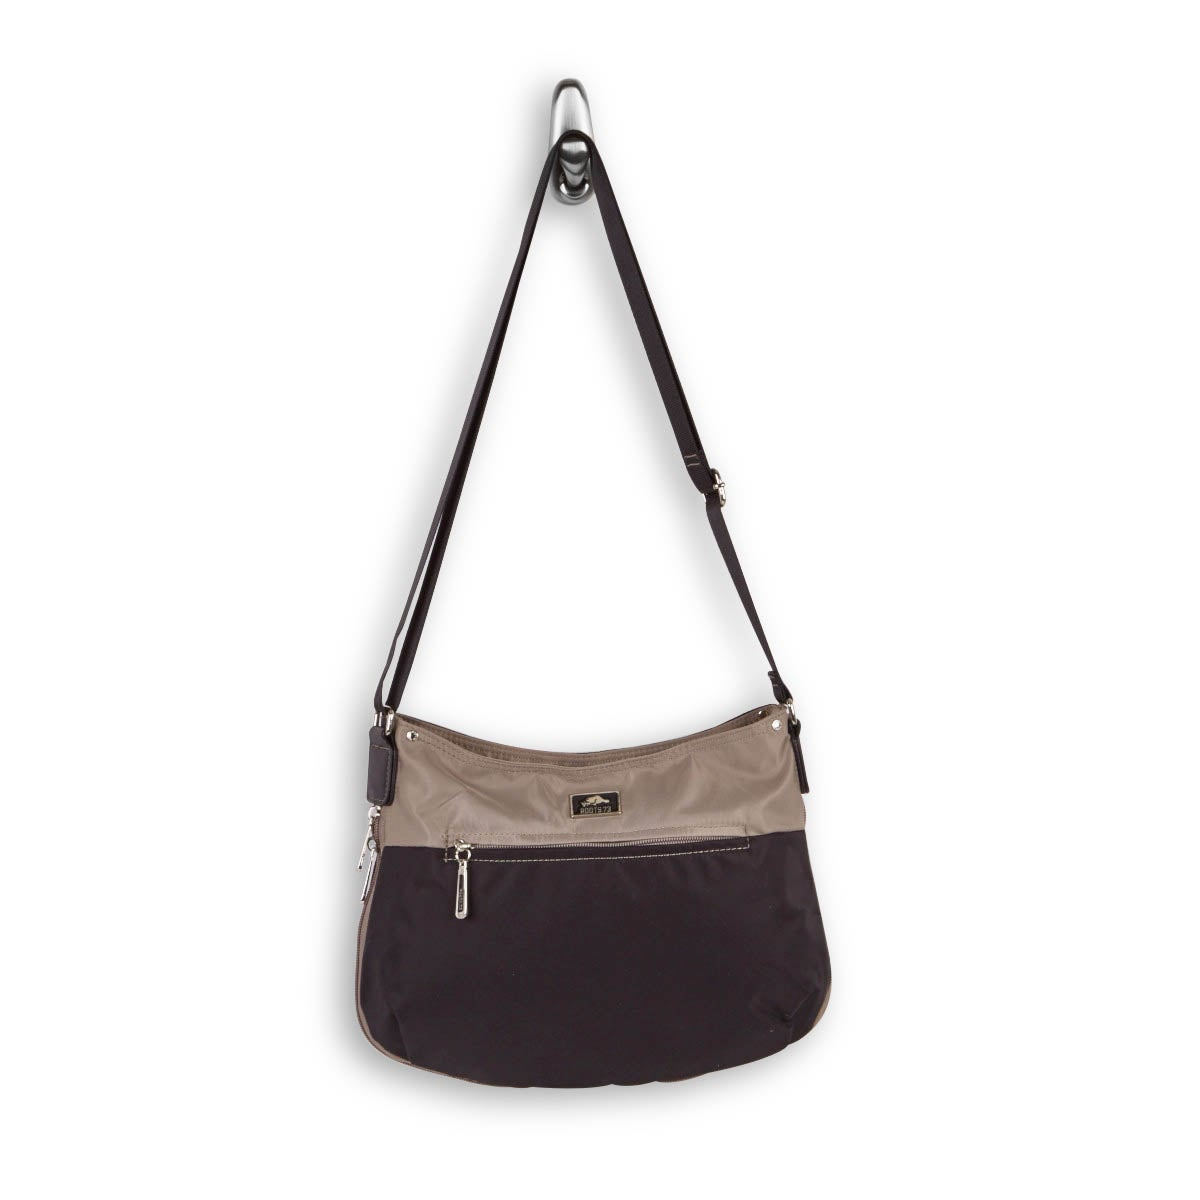 Lds Roots73 bk/tpe top zip crossbody bag